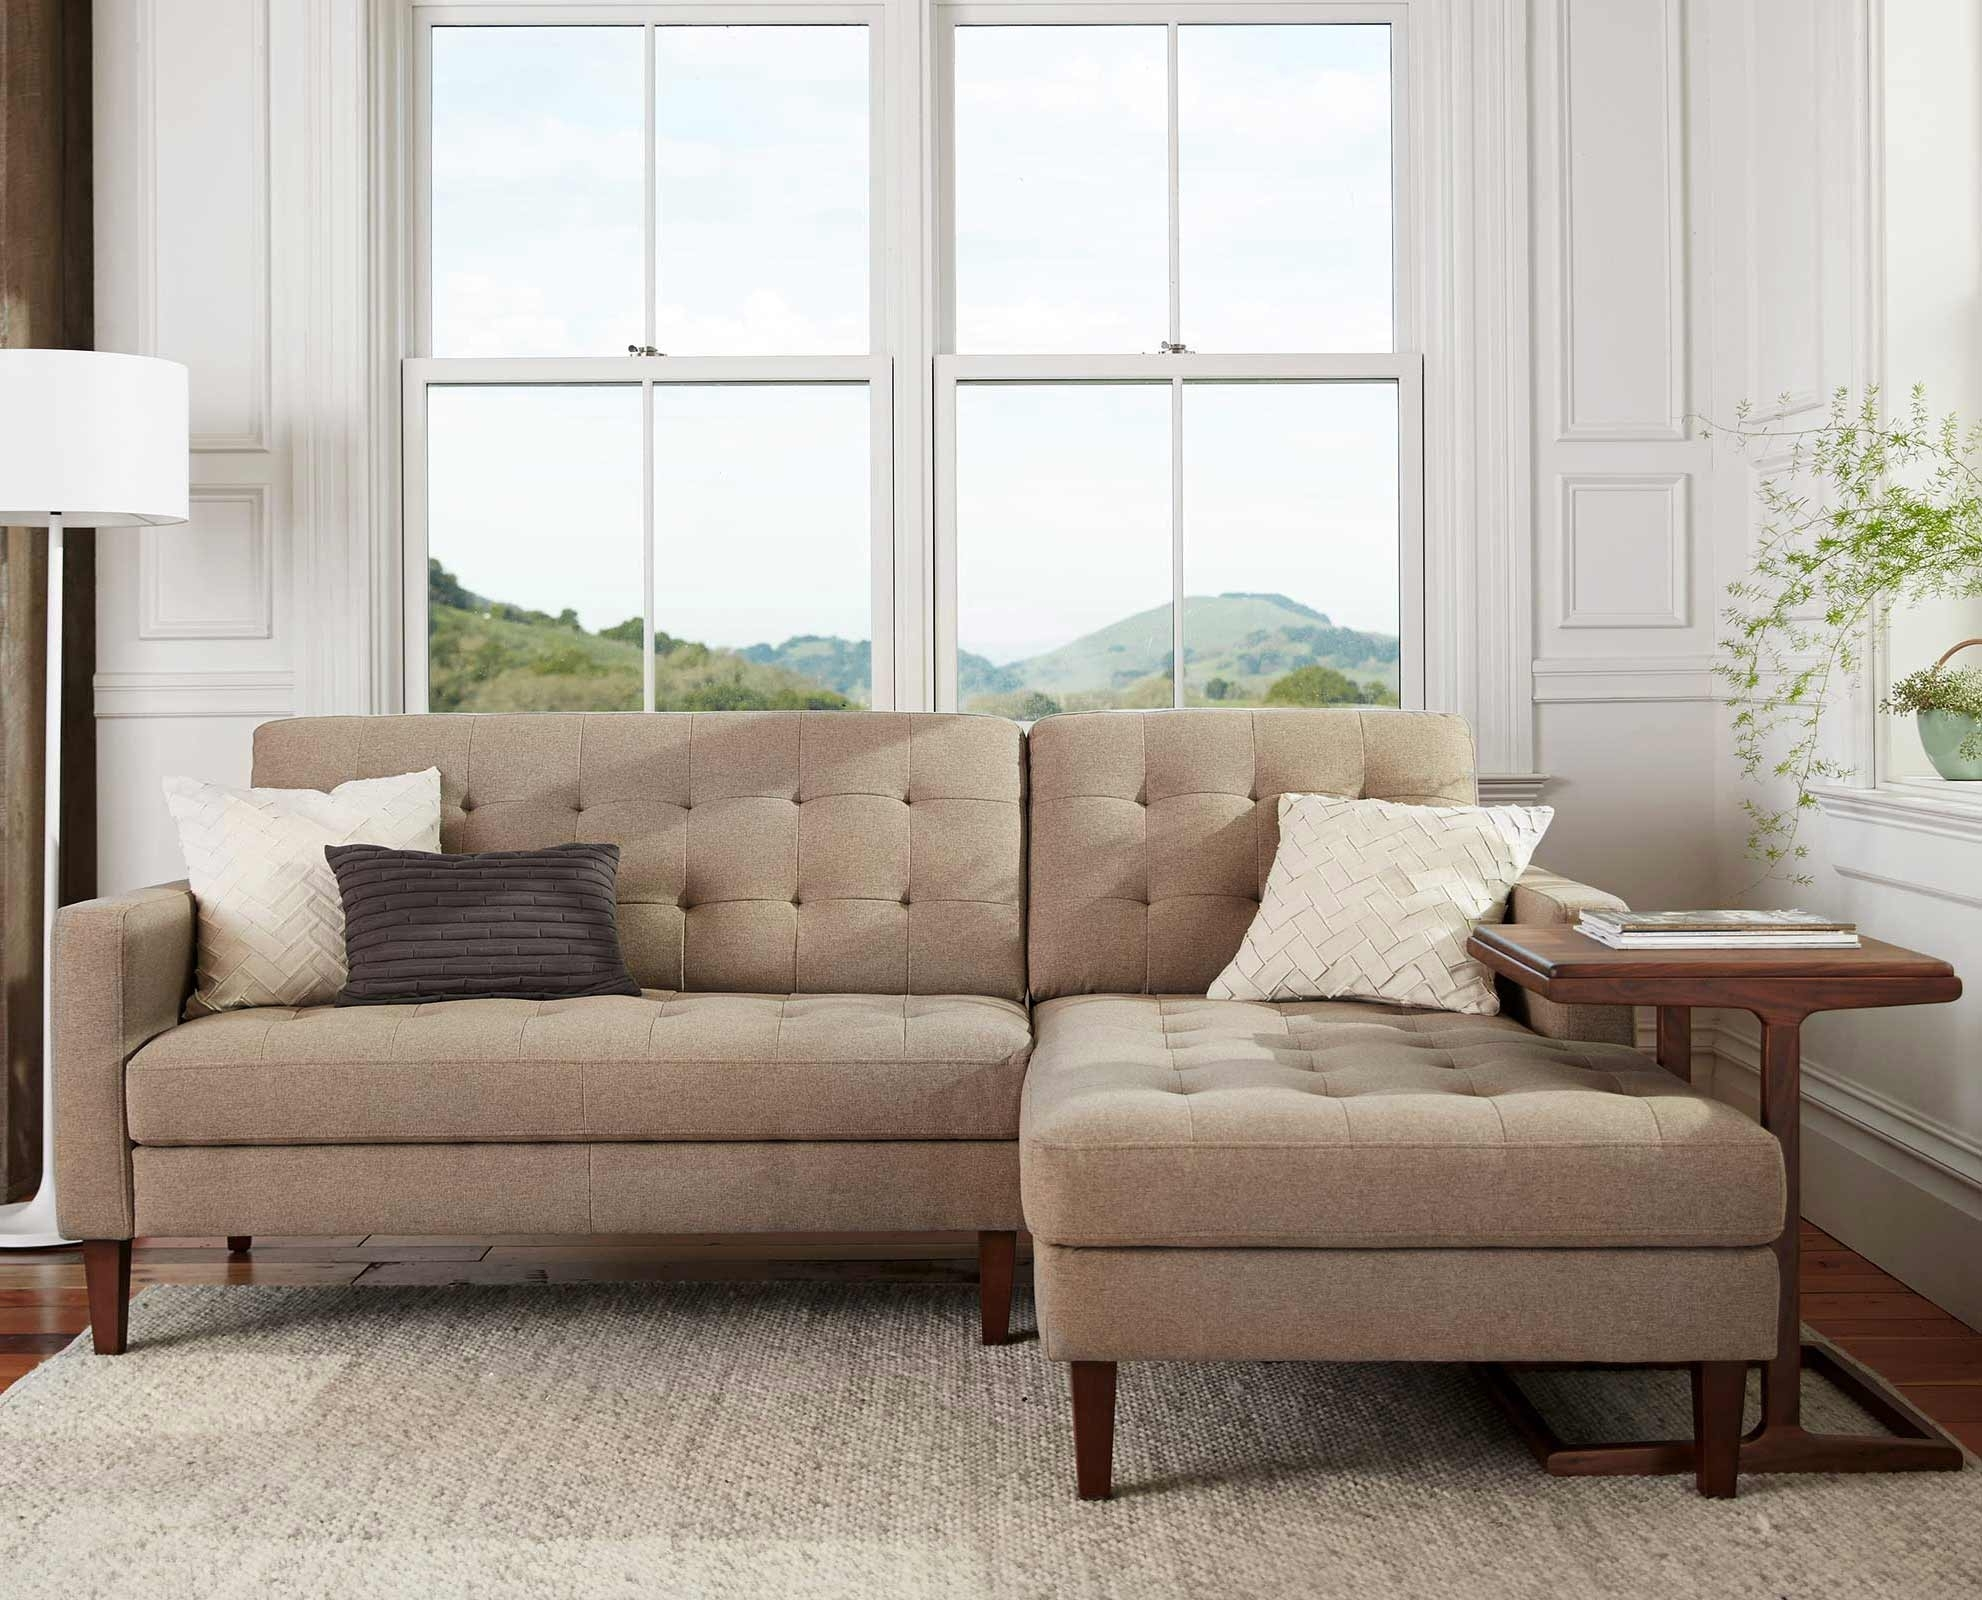 Scandinavian Designs - Create A Relaxing Aesthetic With The Camilla with Dania Sectional Sofas (Image 7 of 10)